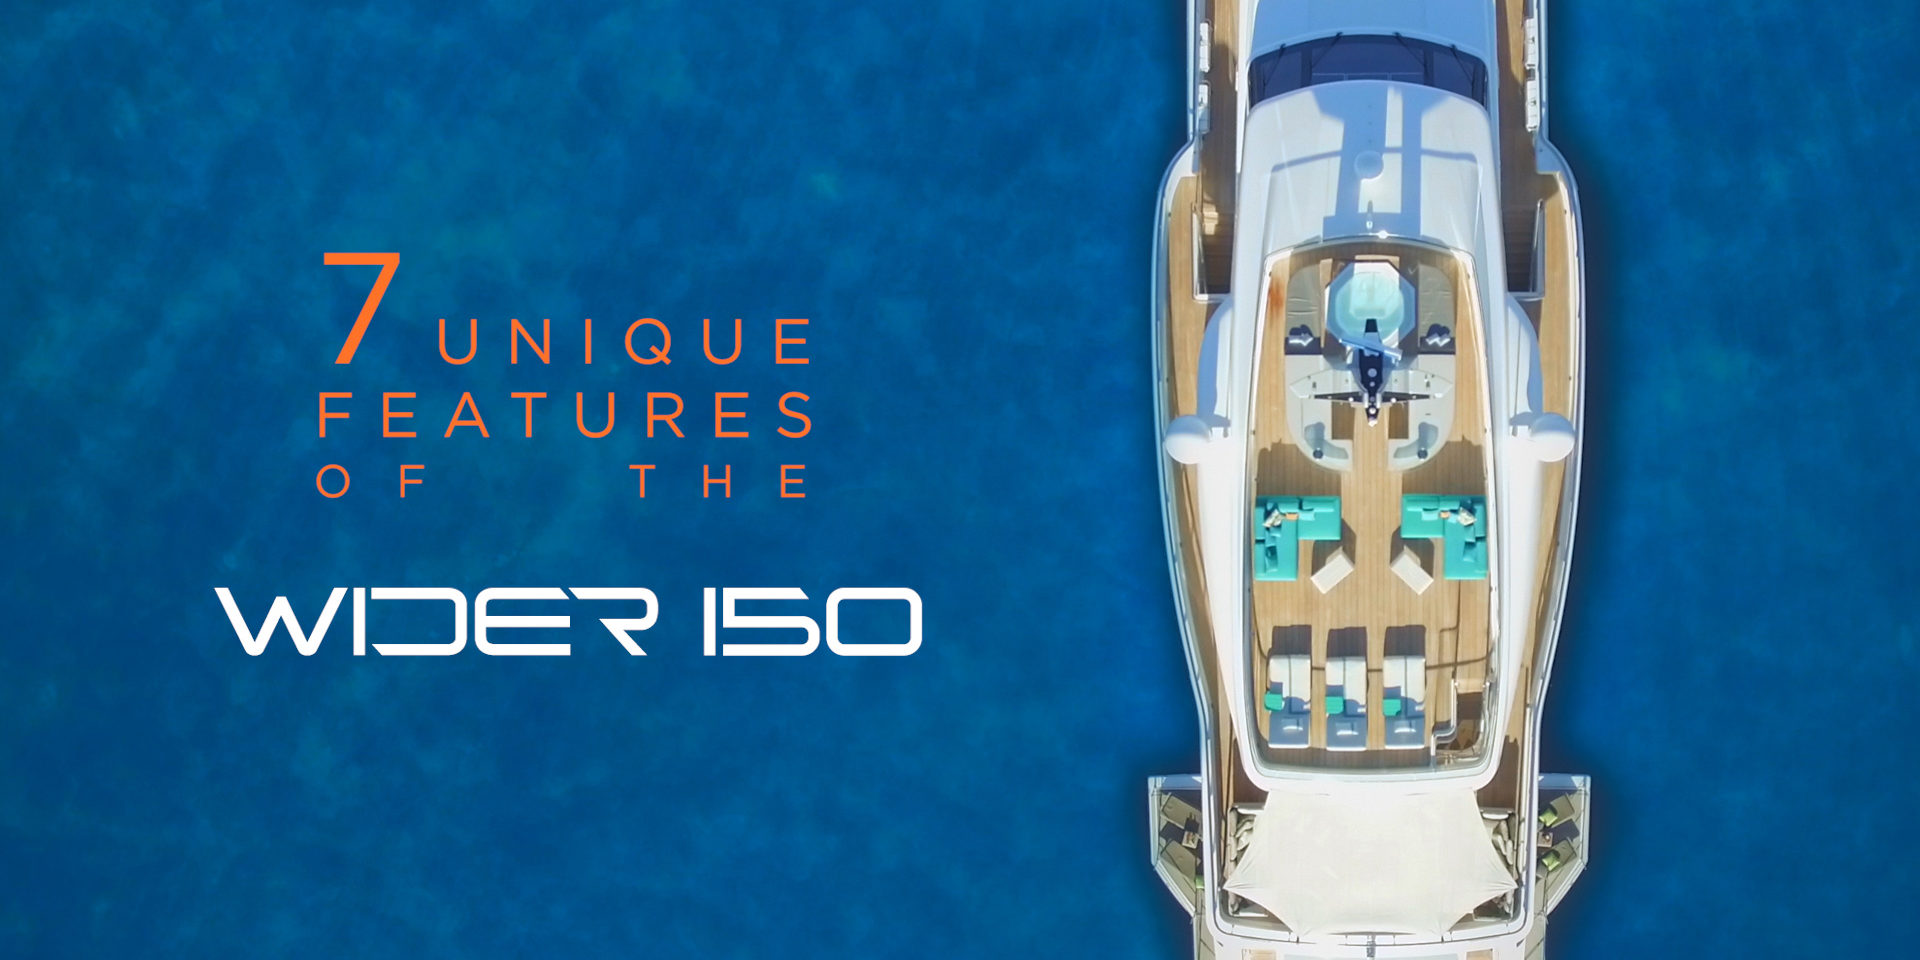 WIDER 150 – 7 Unique Features